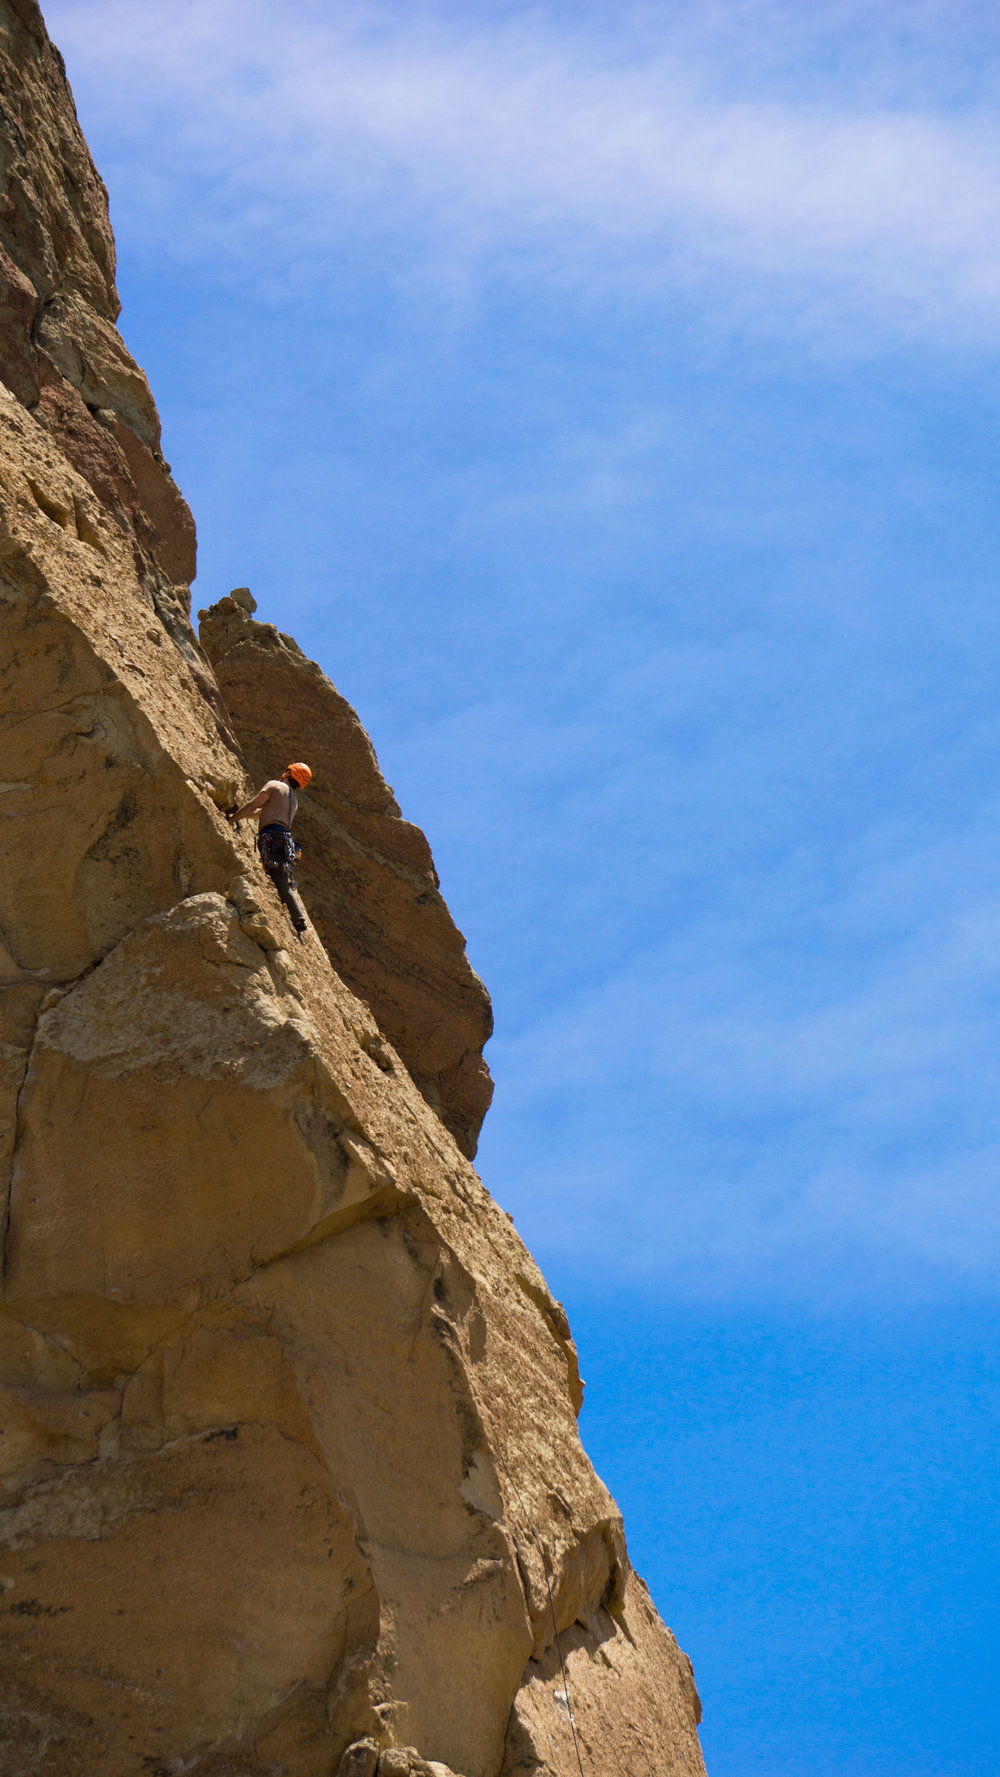 climbers on Koala Rock by Smith Rock State Park